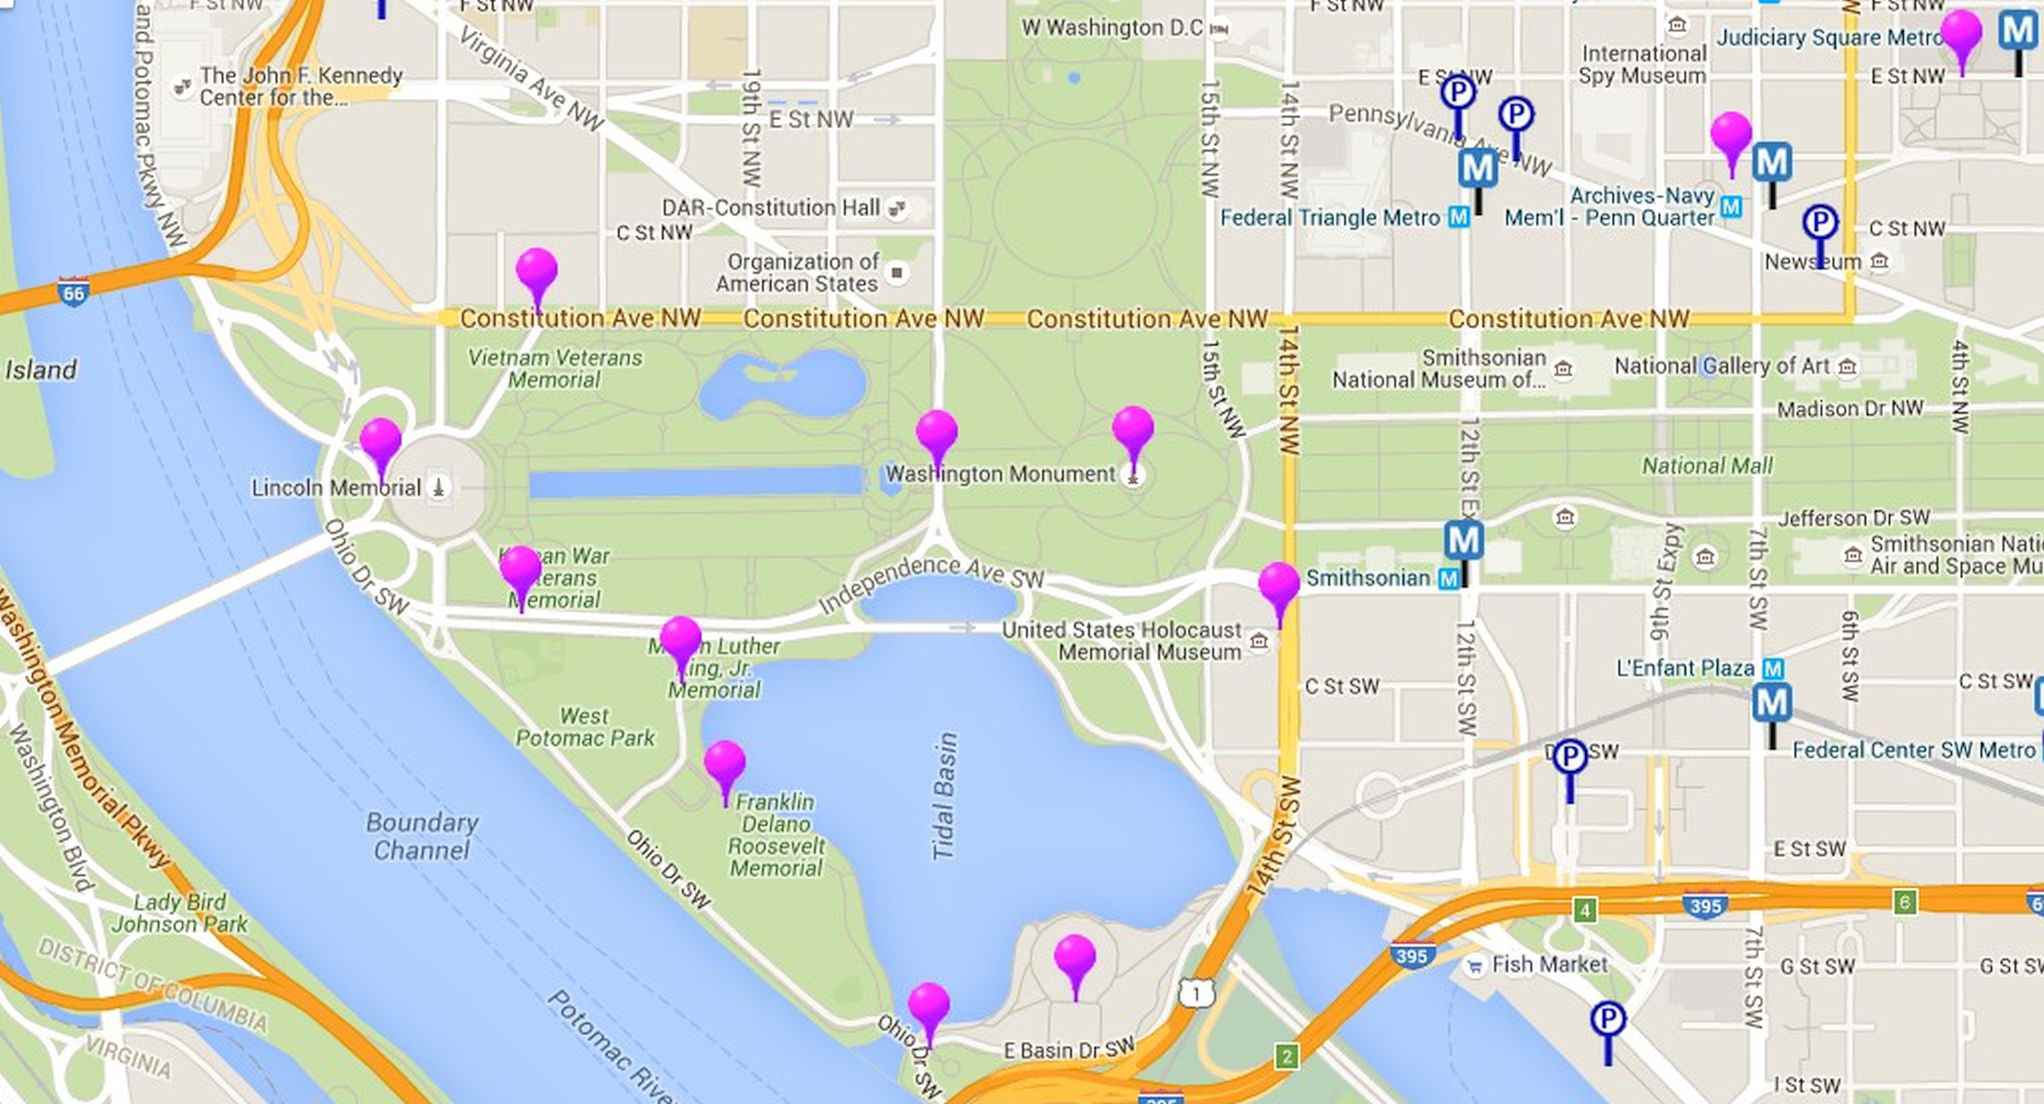 Map Of Monuments And Memorials In Washington D C